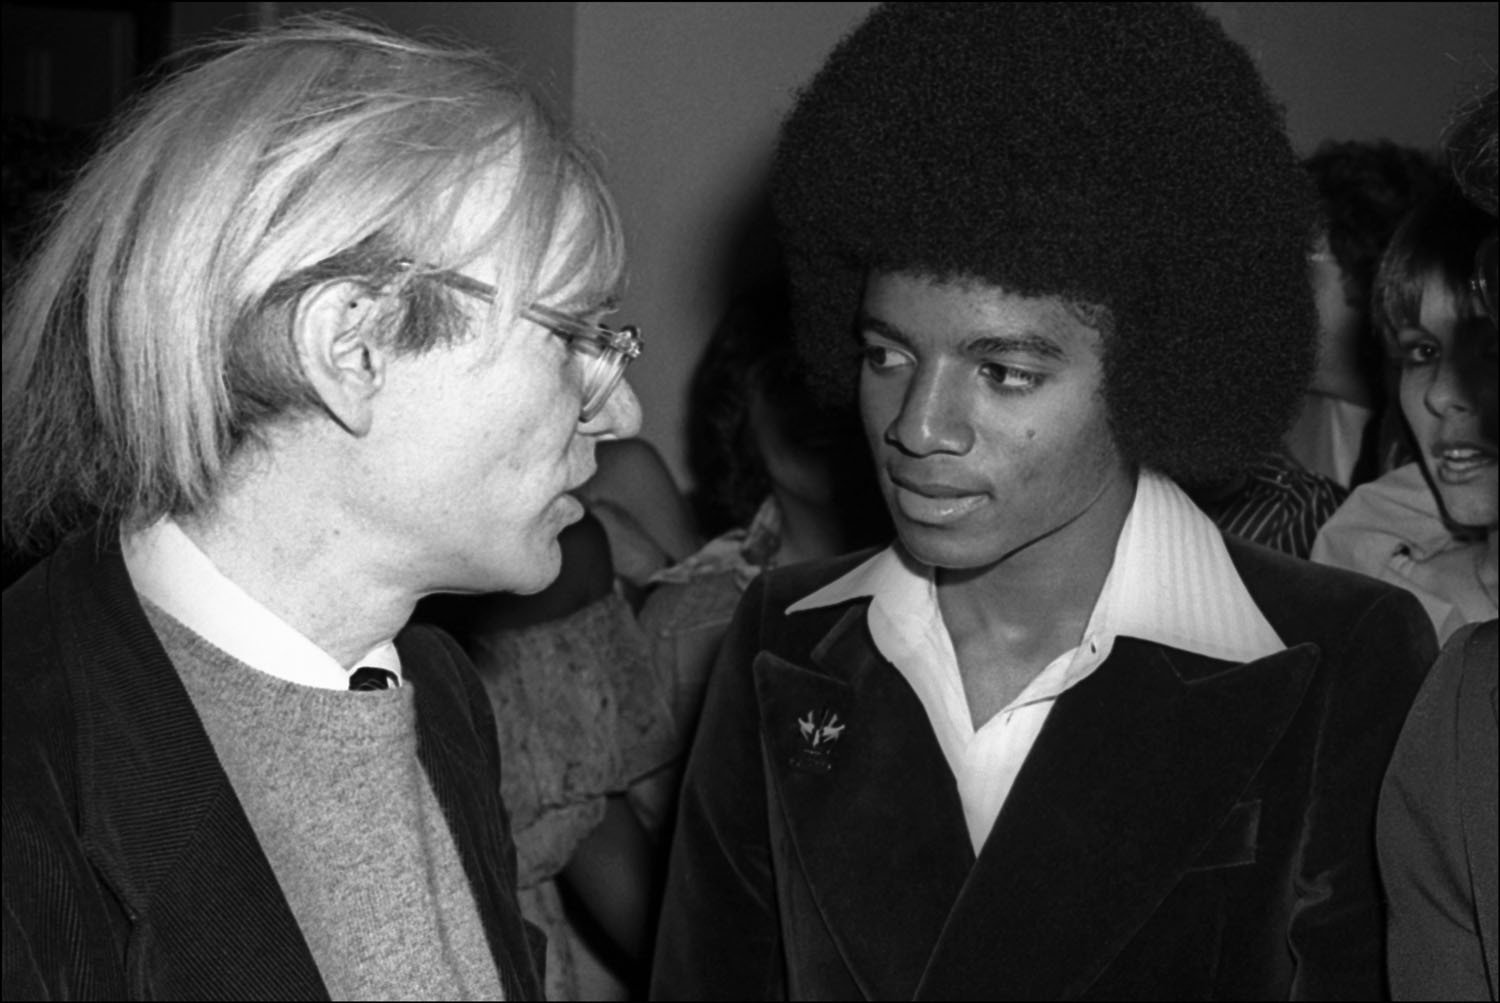 Expositions diverses  - Page 3 S54_Andy_Warhol_Michael_Jackson_C